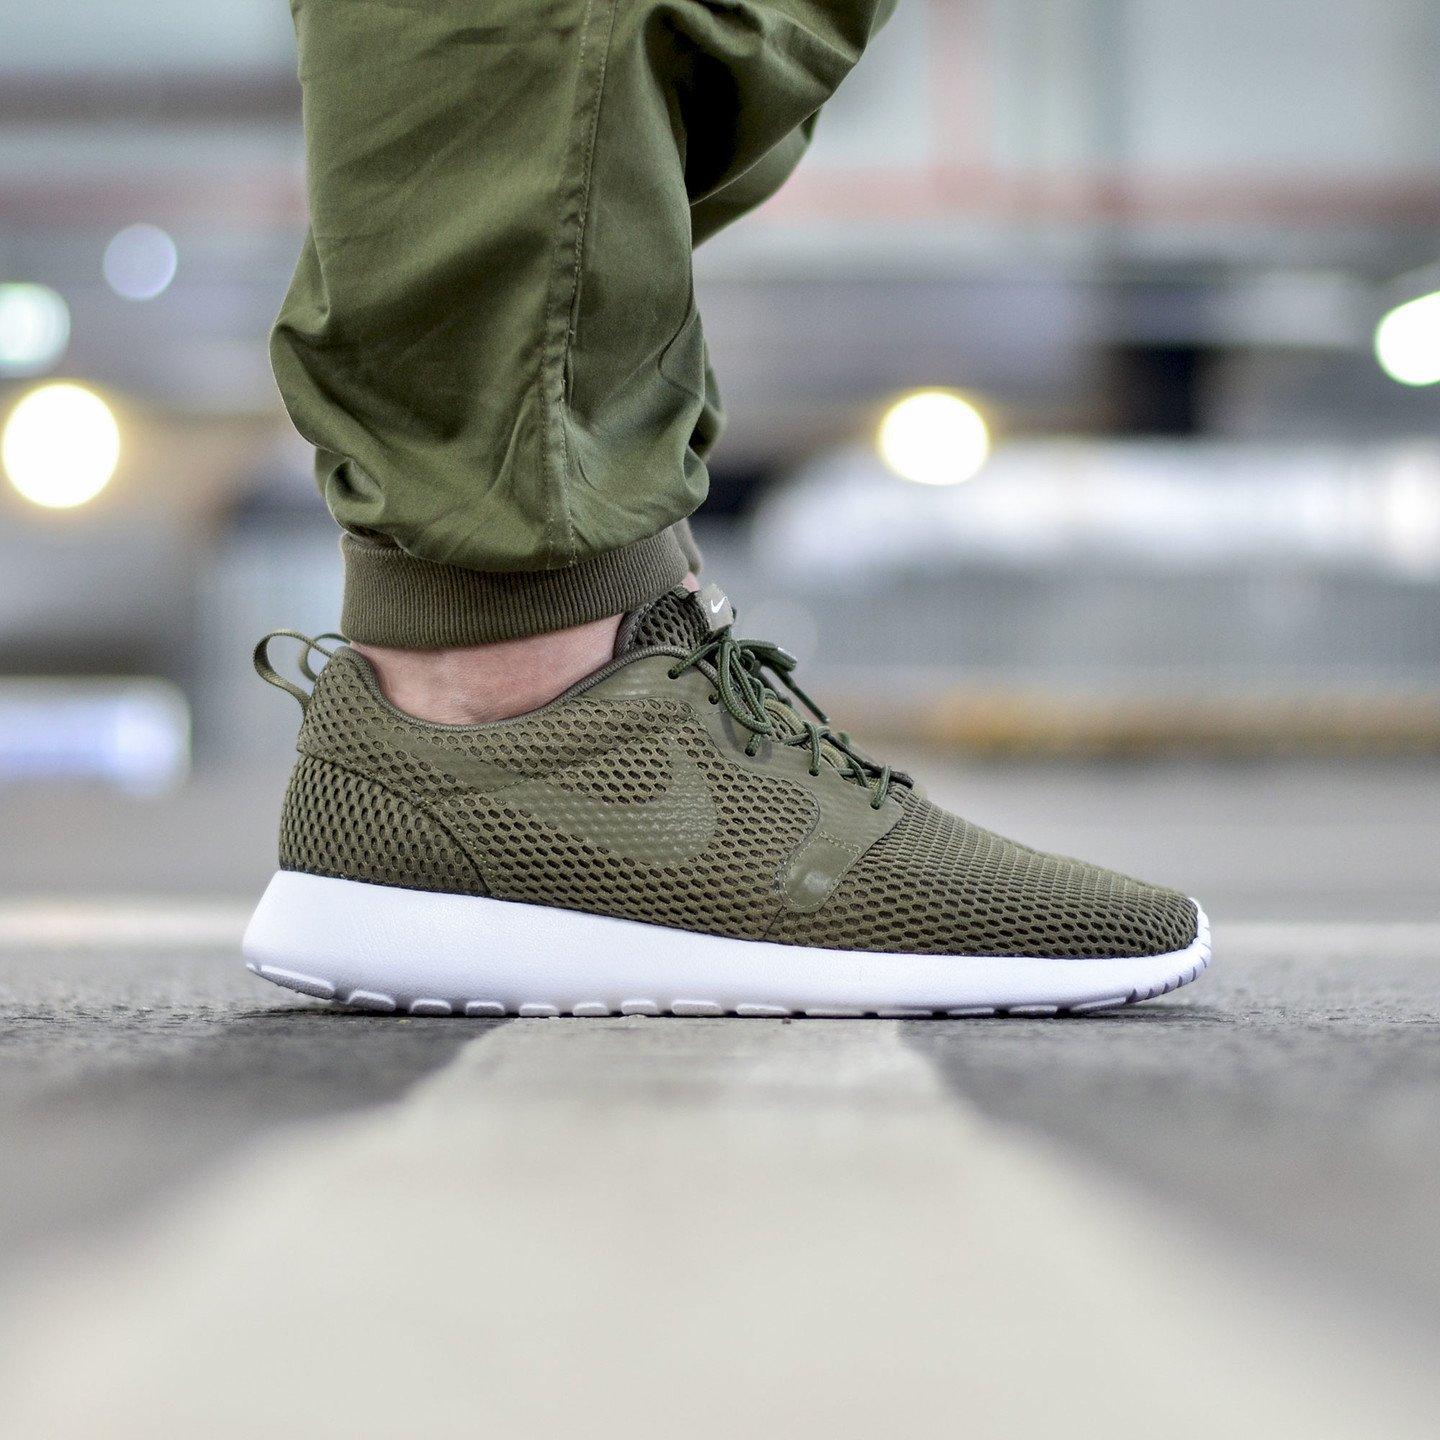 Nike Roshe One Hyperfuse BR Medium Olive / White 833125-200-42.5